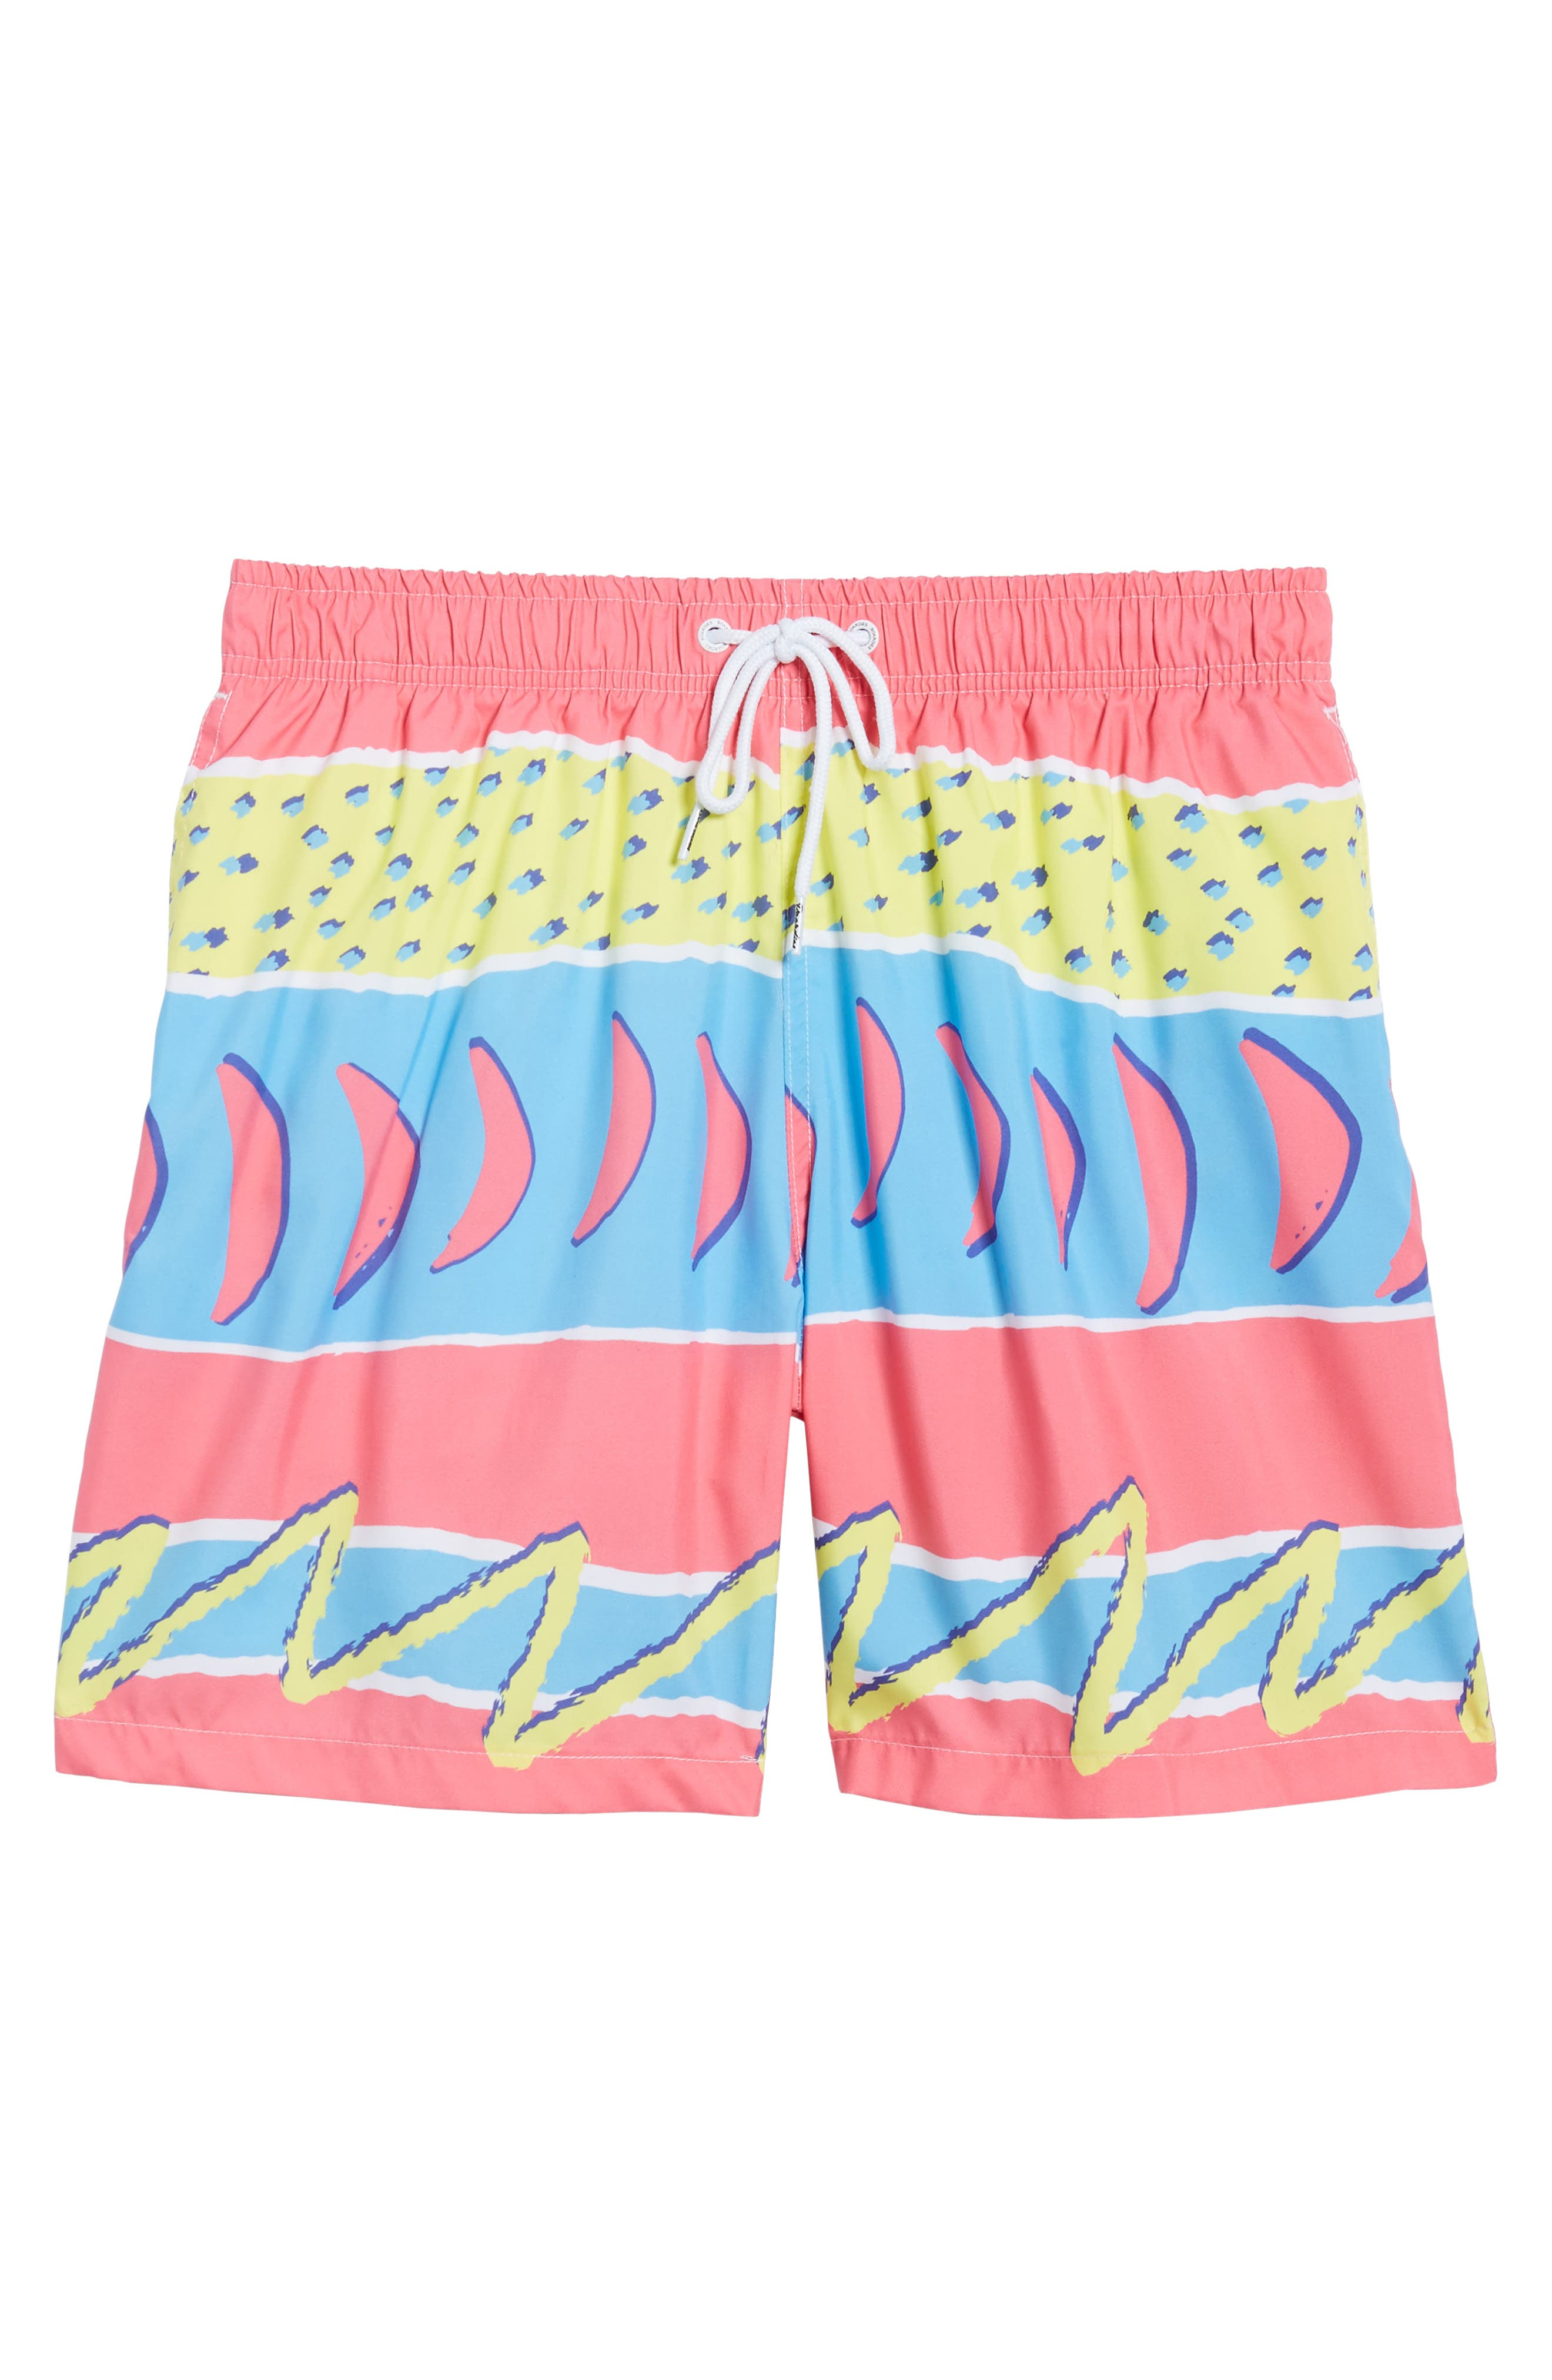 Fresh Prince Board Shorts,                             Alternate thumbnail 6, color,                             650